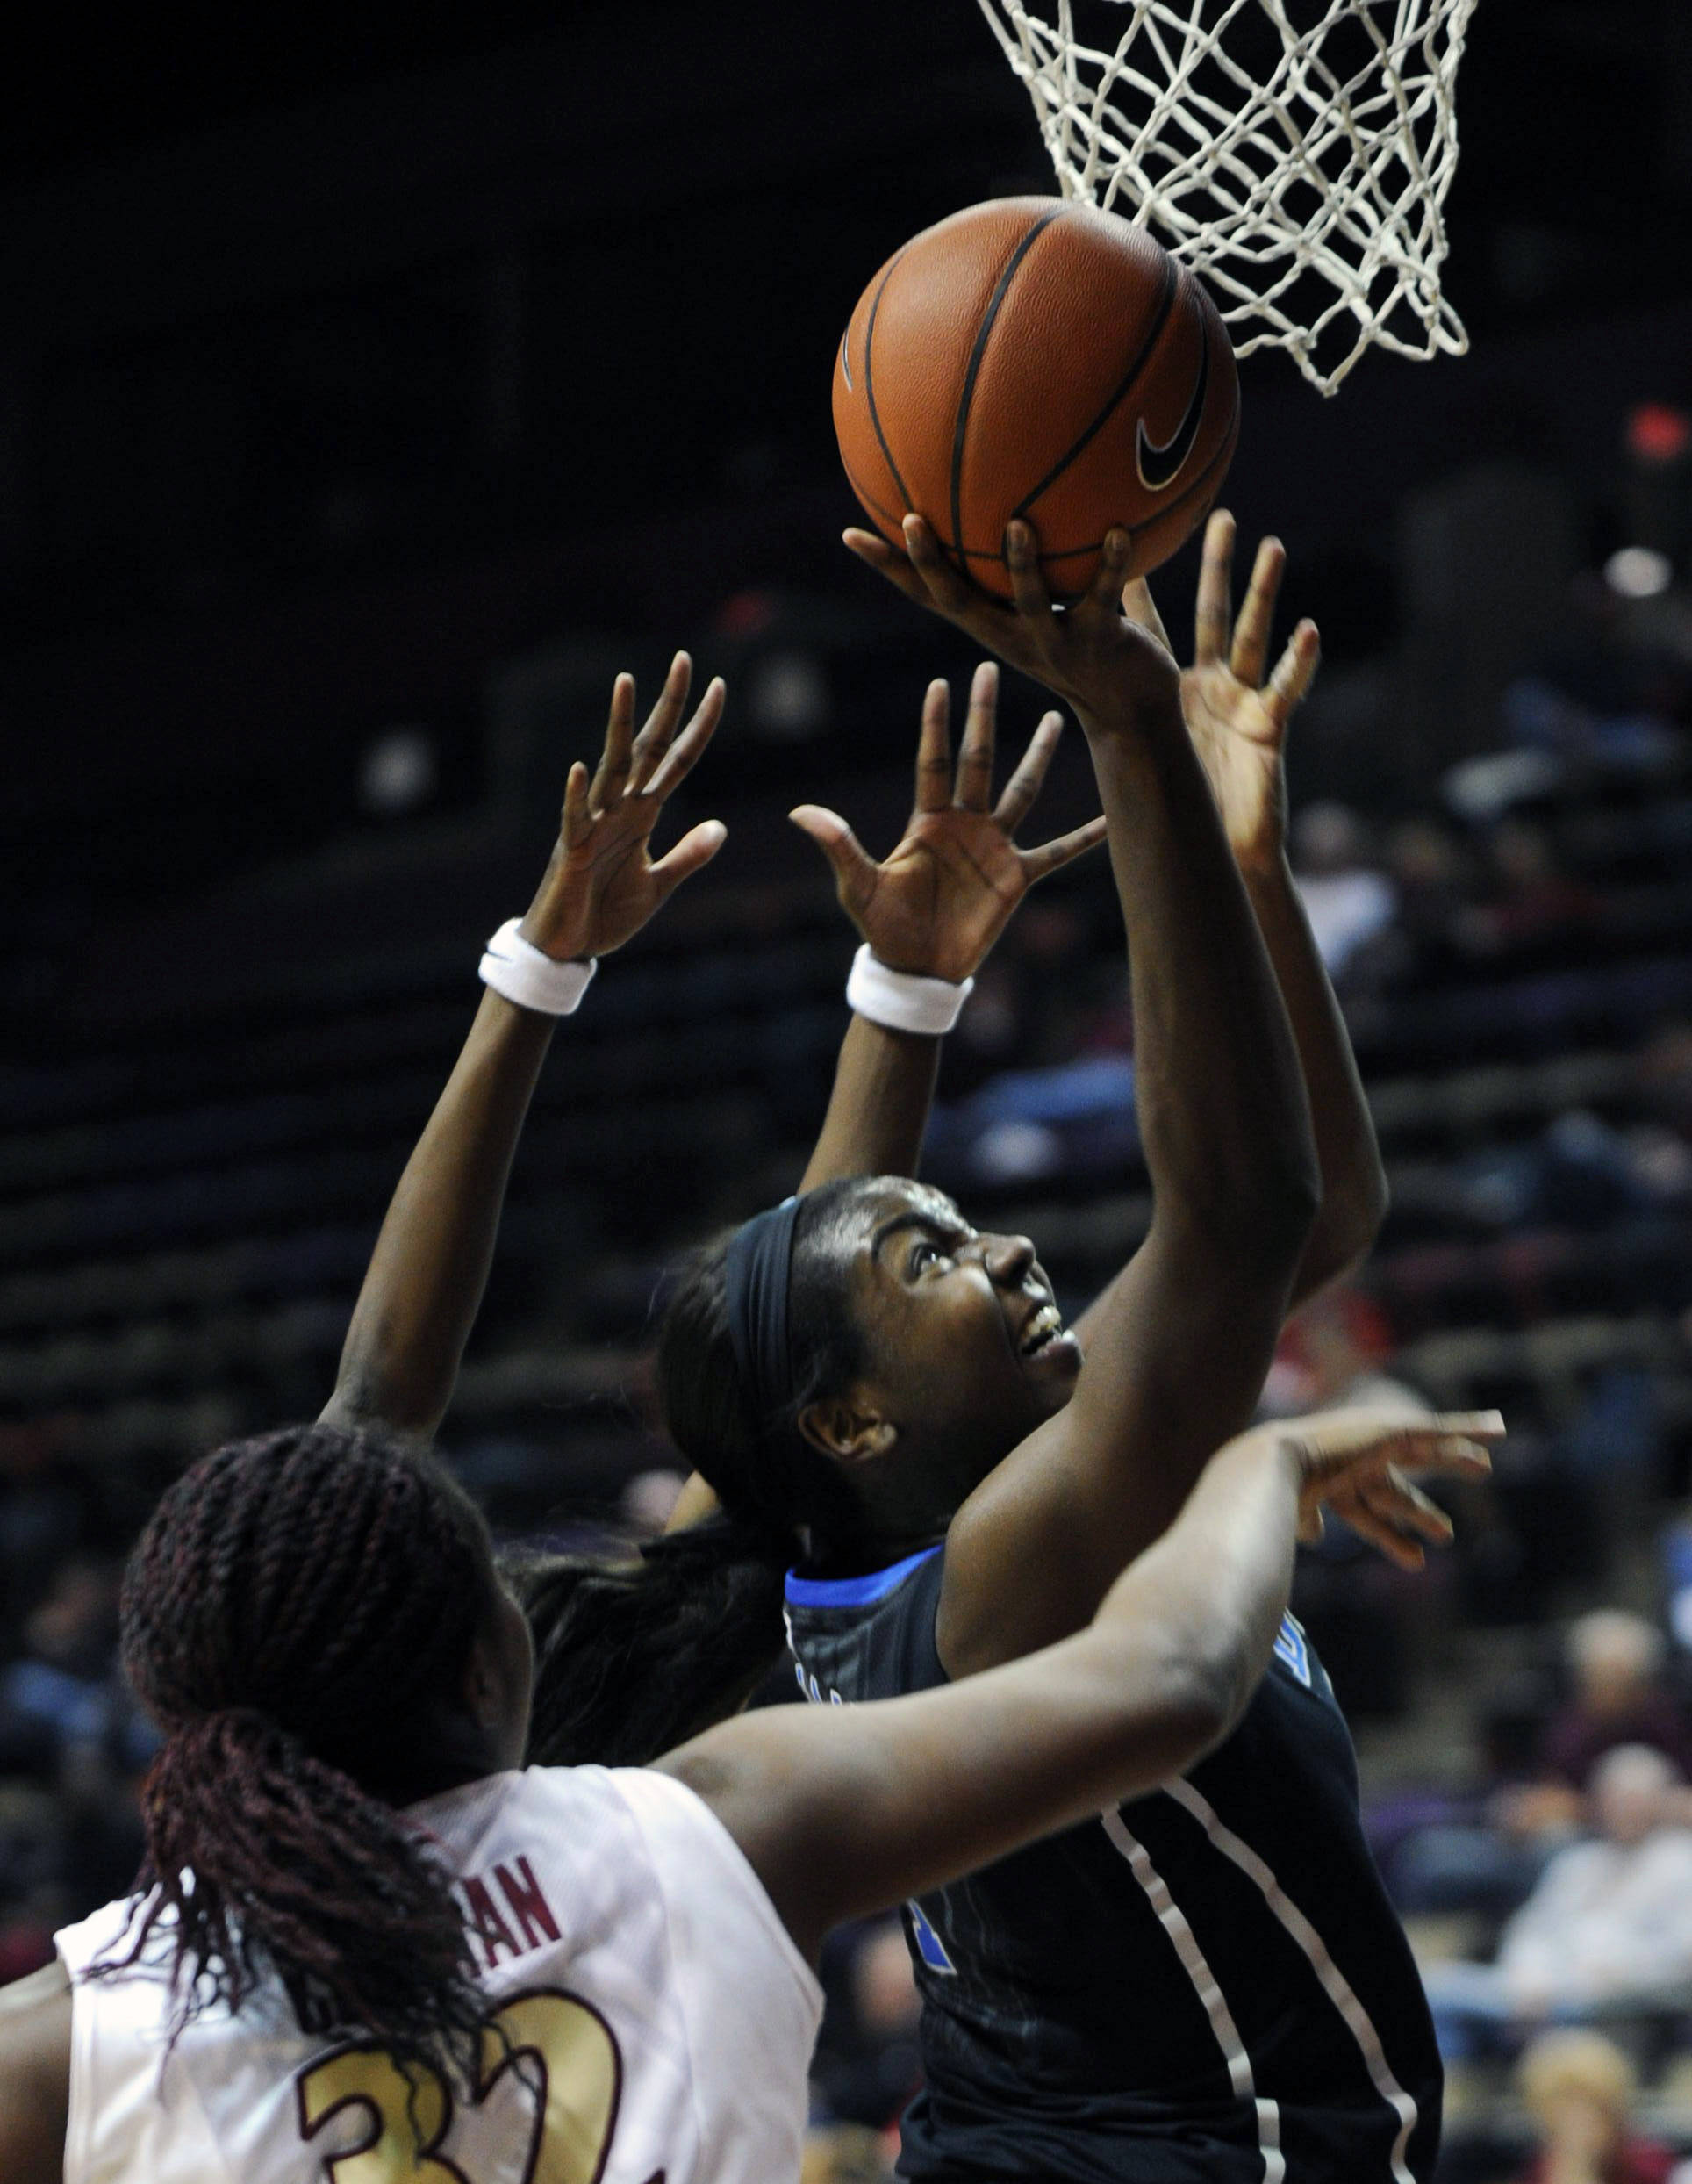 Jan 23, 2014; Tallahassee, FL, USA; Duke Blue Devils center Elizabeth Williams (1) shoots the ball against Florida State Seminoles forward Lauren Coleman (32) during the first half of the game at the Donald L. Tucker Center (Tallahassee). Mandatory Credit: Melina Vastola-USA TODAY Sports